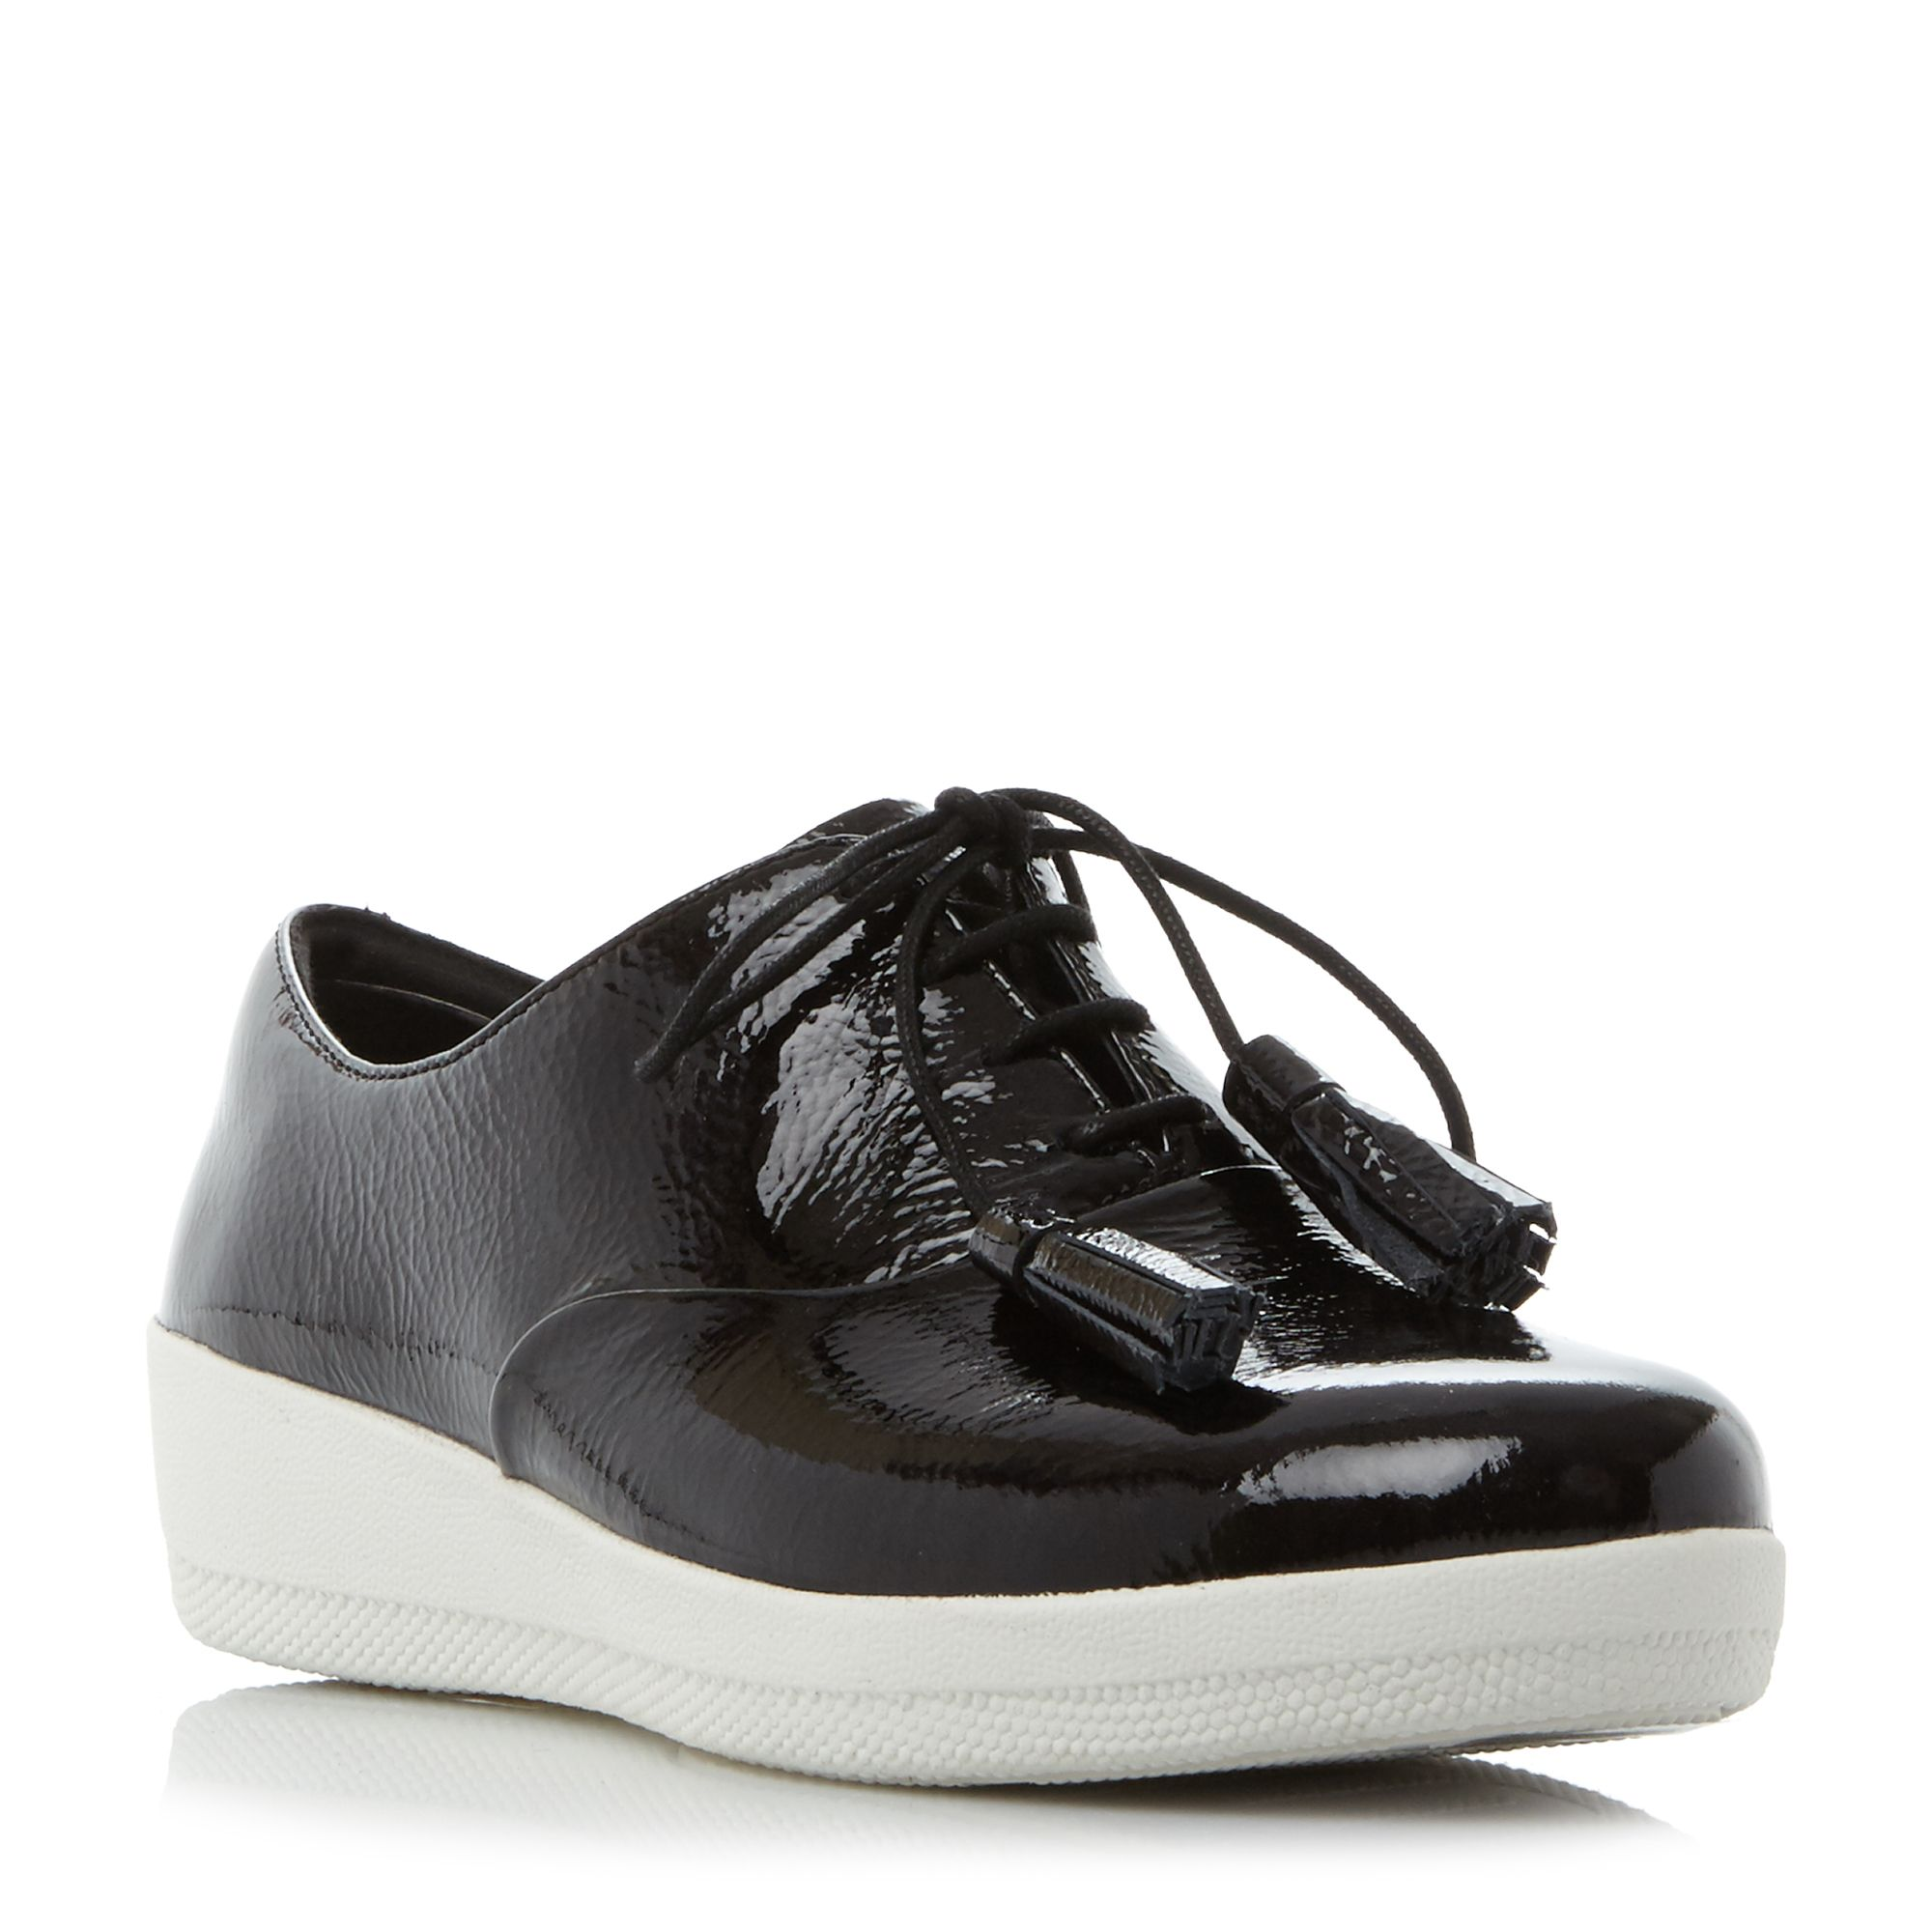 FitFlop Classic tassel patent oxford shoes, Black Multi